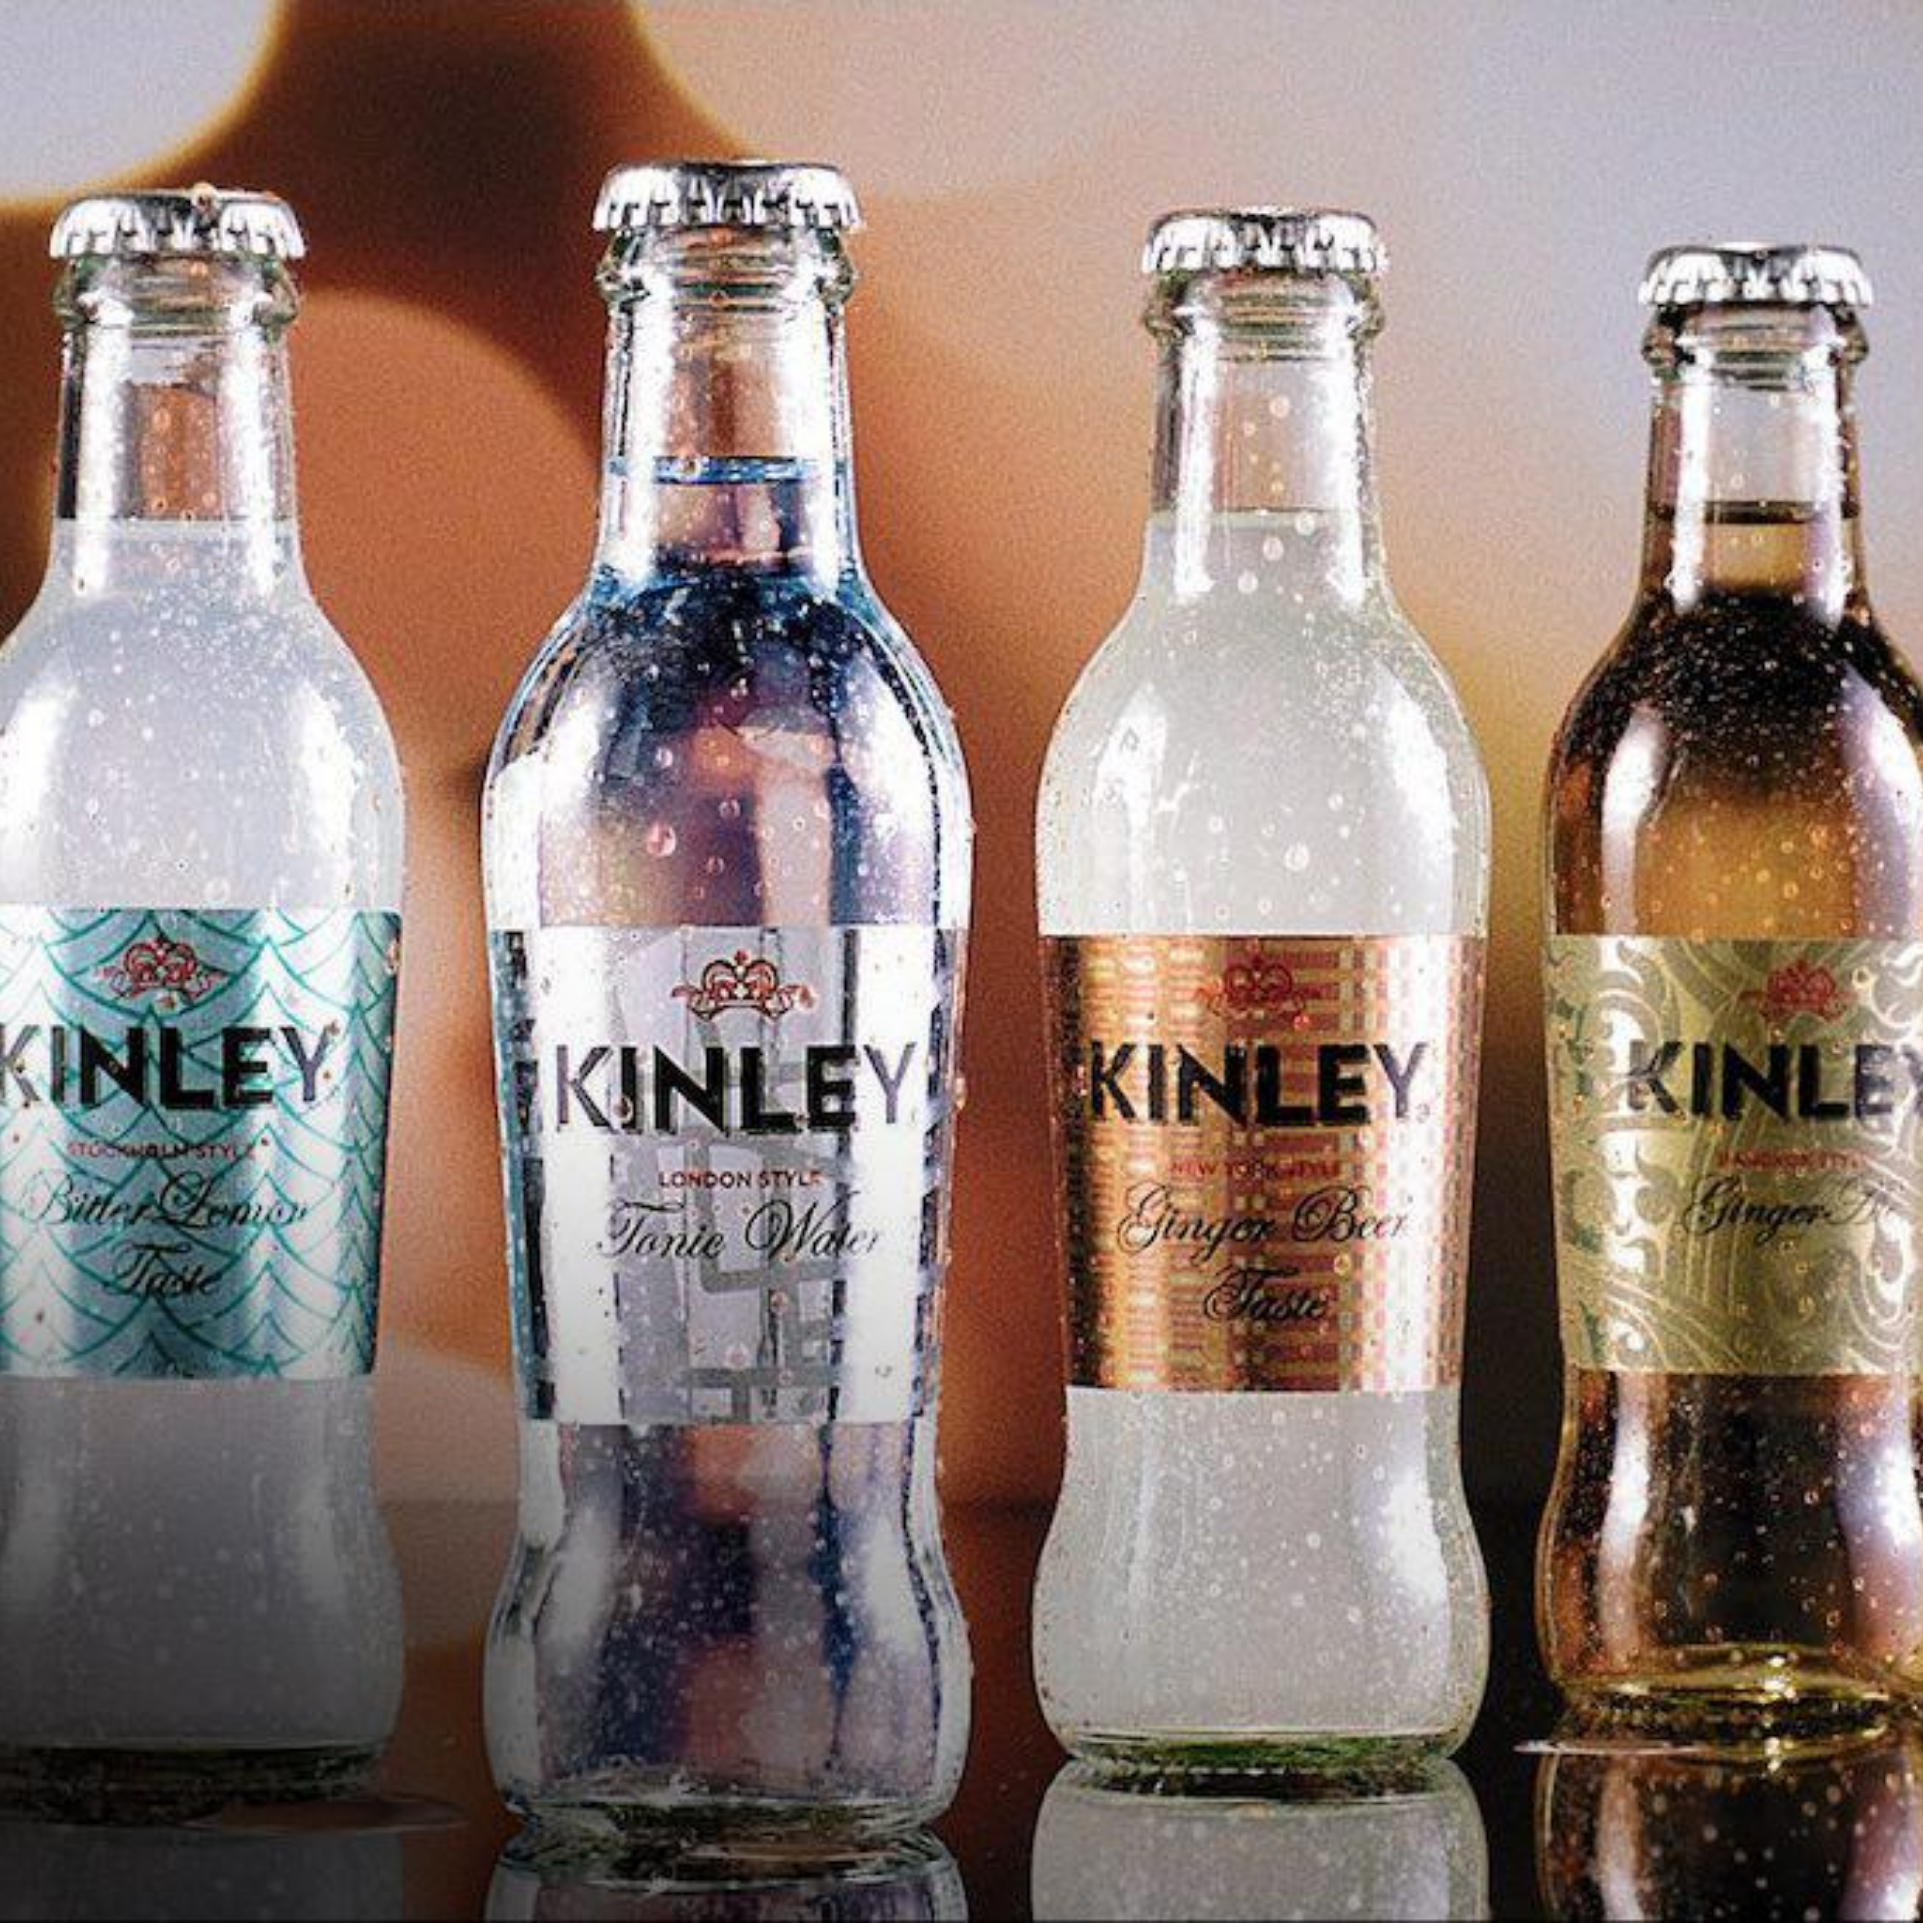 ASSAPORA IL MONDO IN OGNI COCKTAIL CON KINLEY